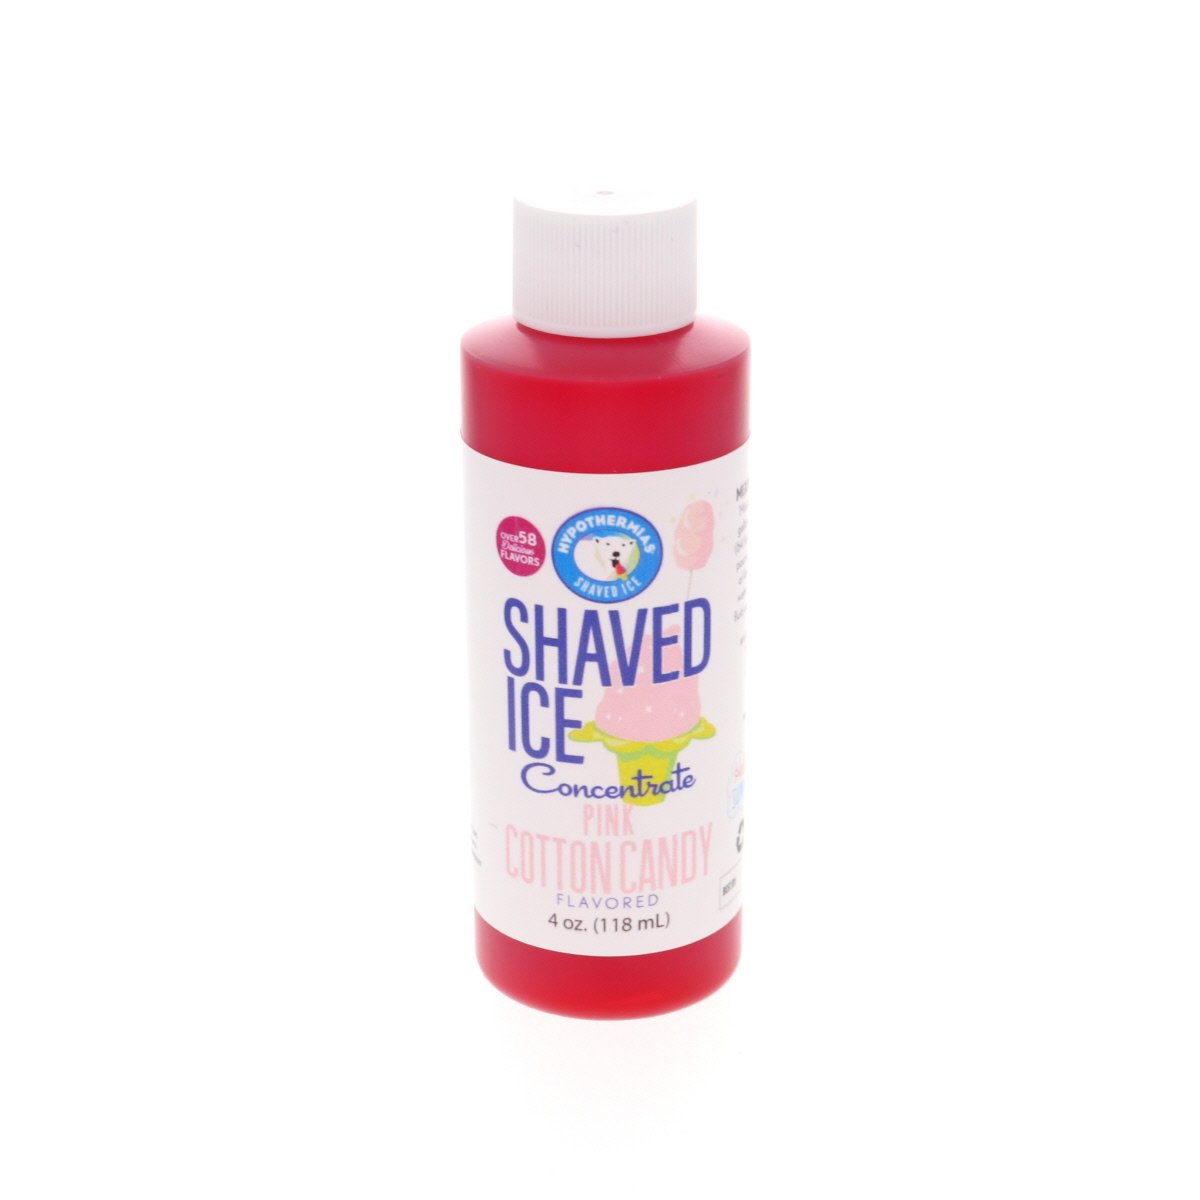 snow cone syrup flavor concentrate pink cotton candy 4 Fl Oz